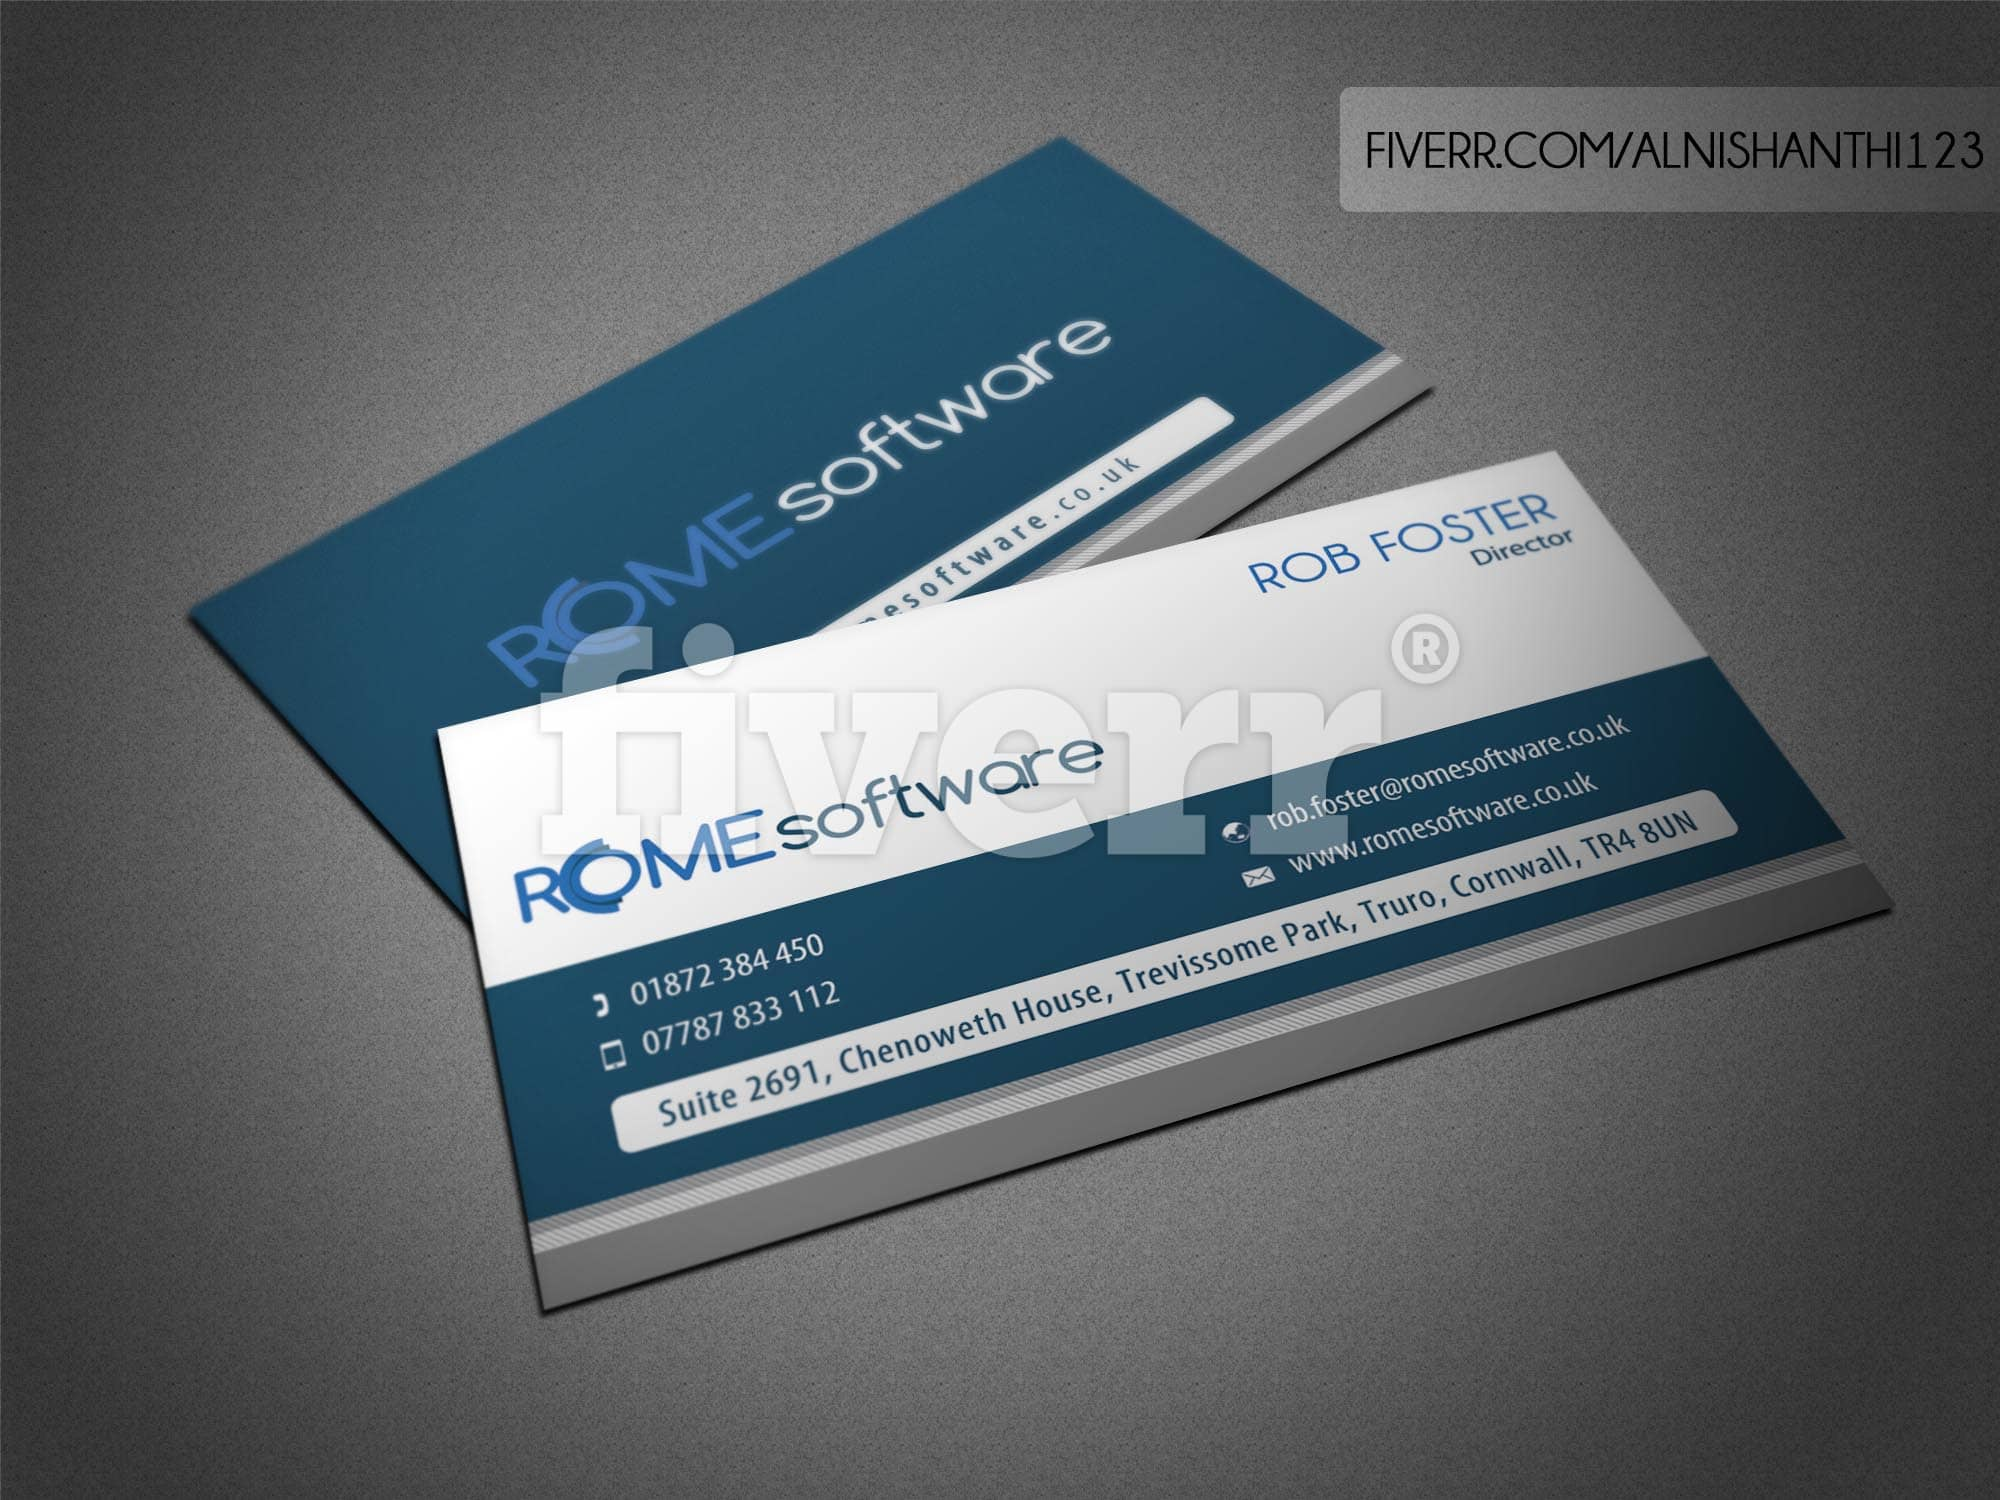 Design professional double side business card with unlimited design professional double side business card with unlimited revisions by alnishanthi123 reheart Image collections